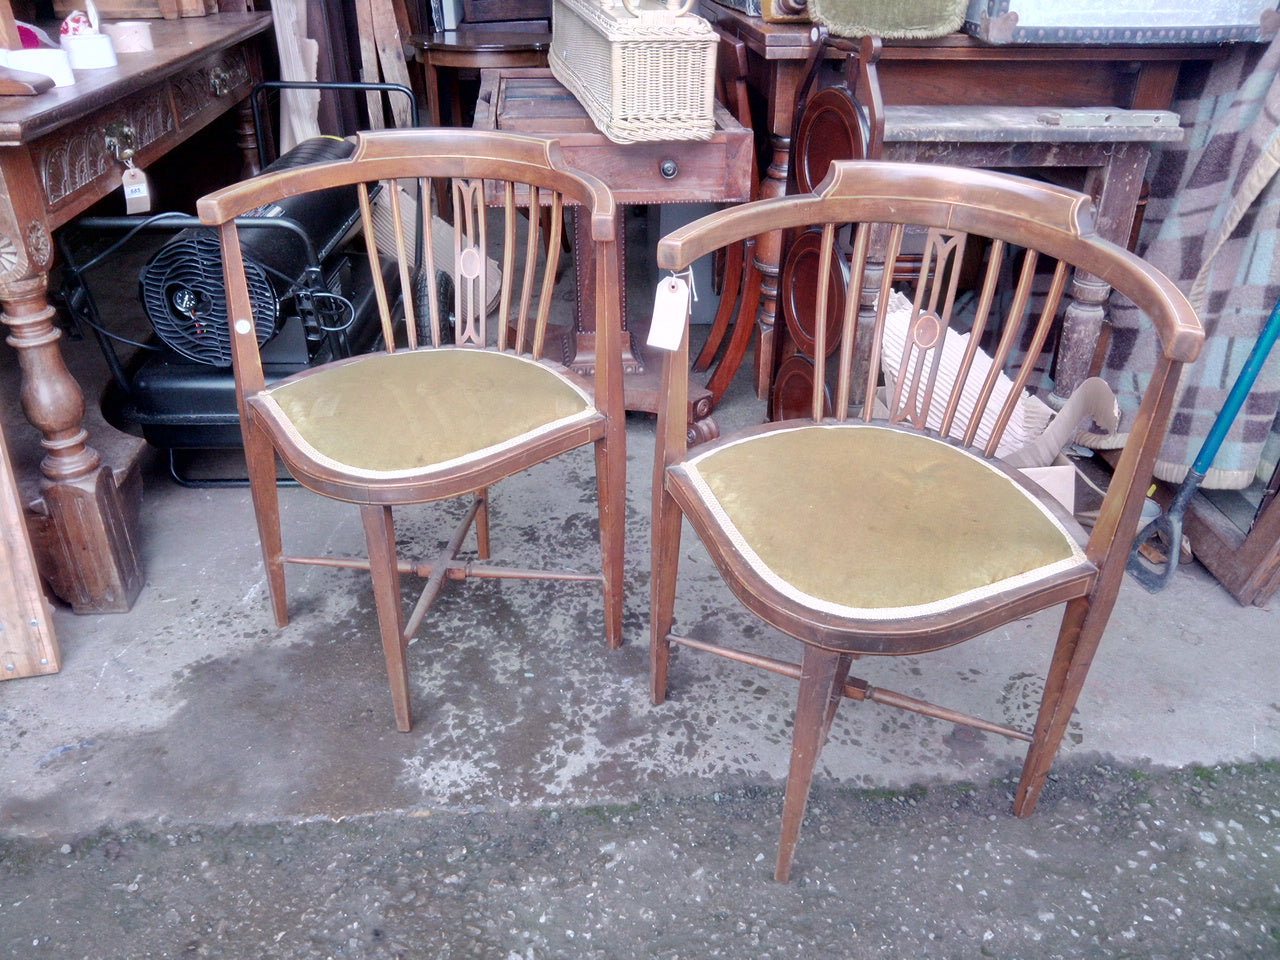 Commissioned Edwardian Chairs